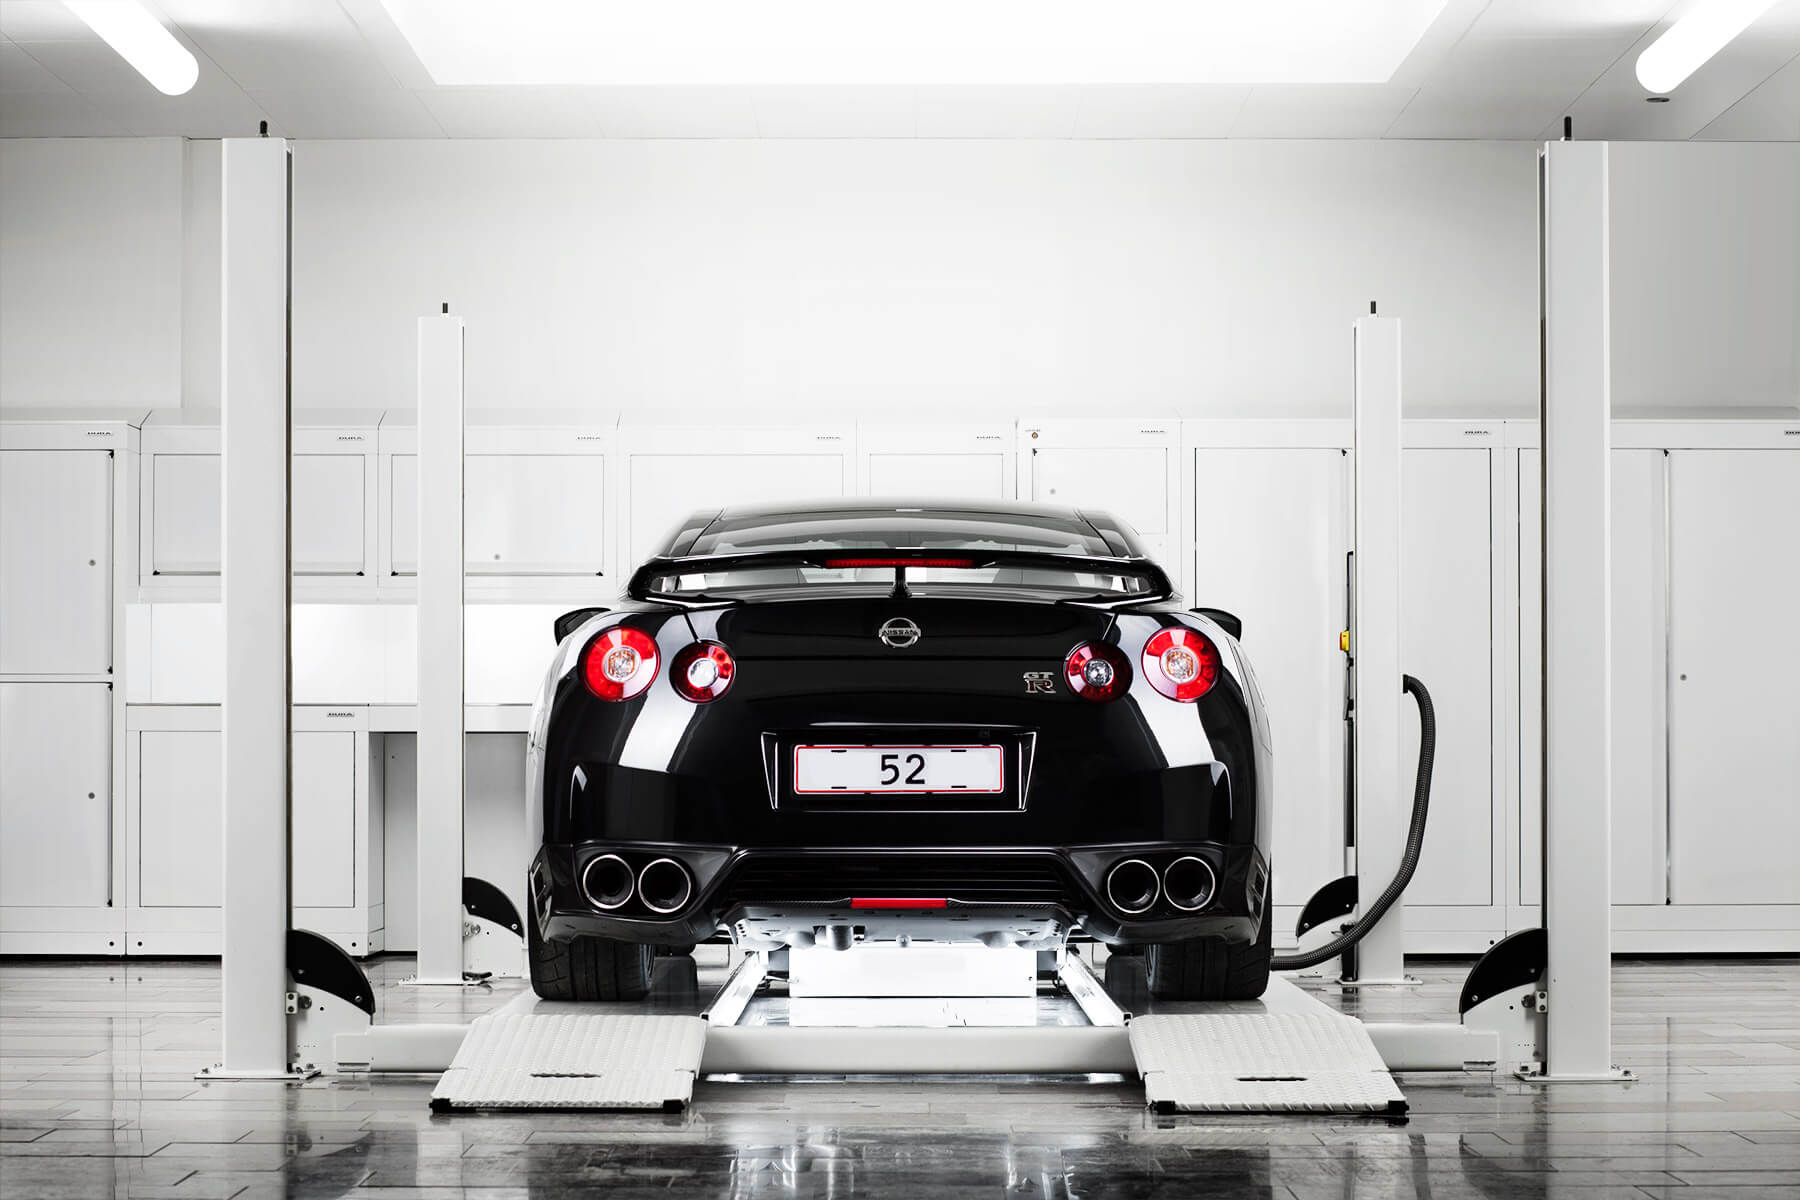 Black Nissan GTR workshop